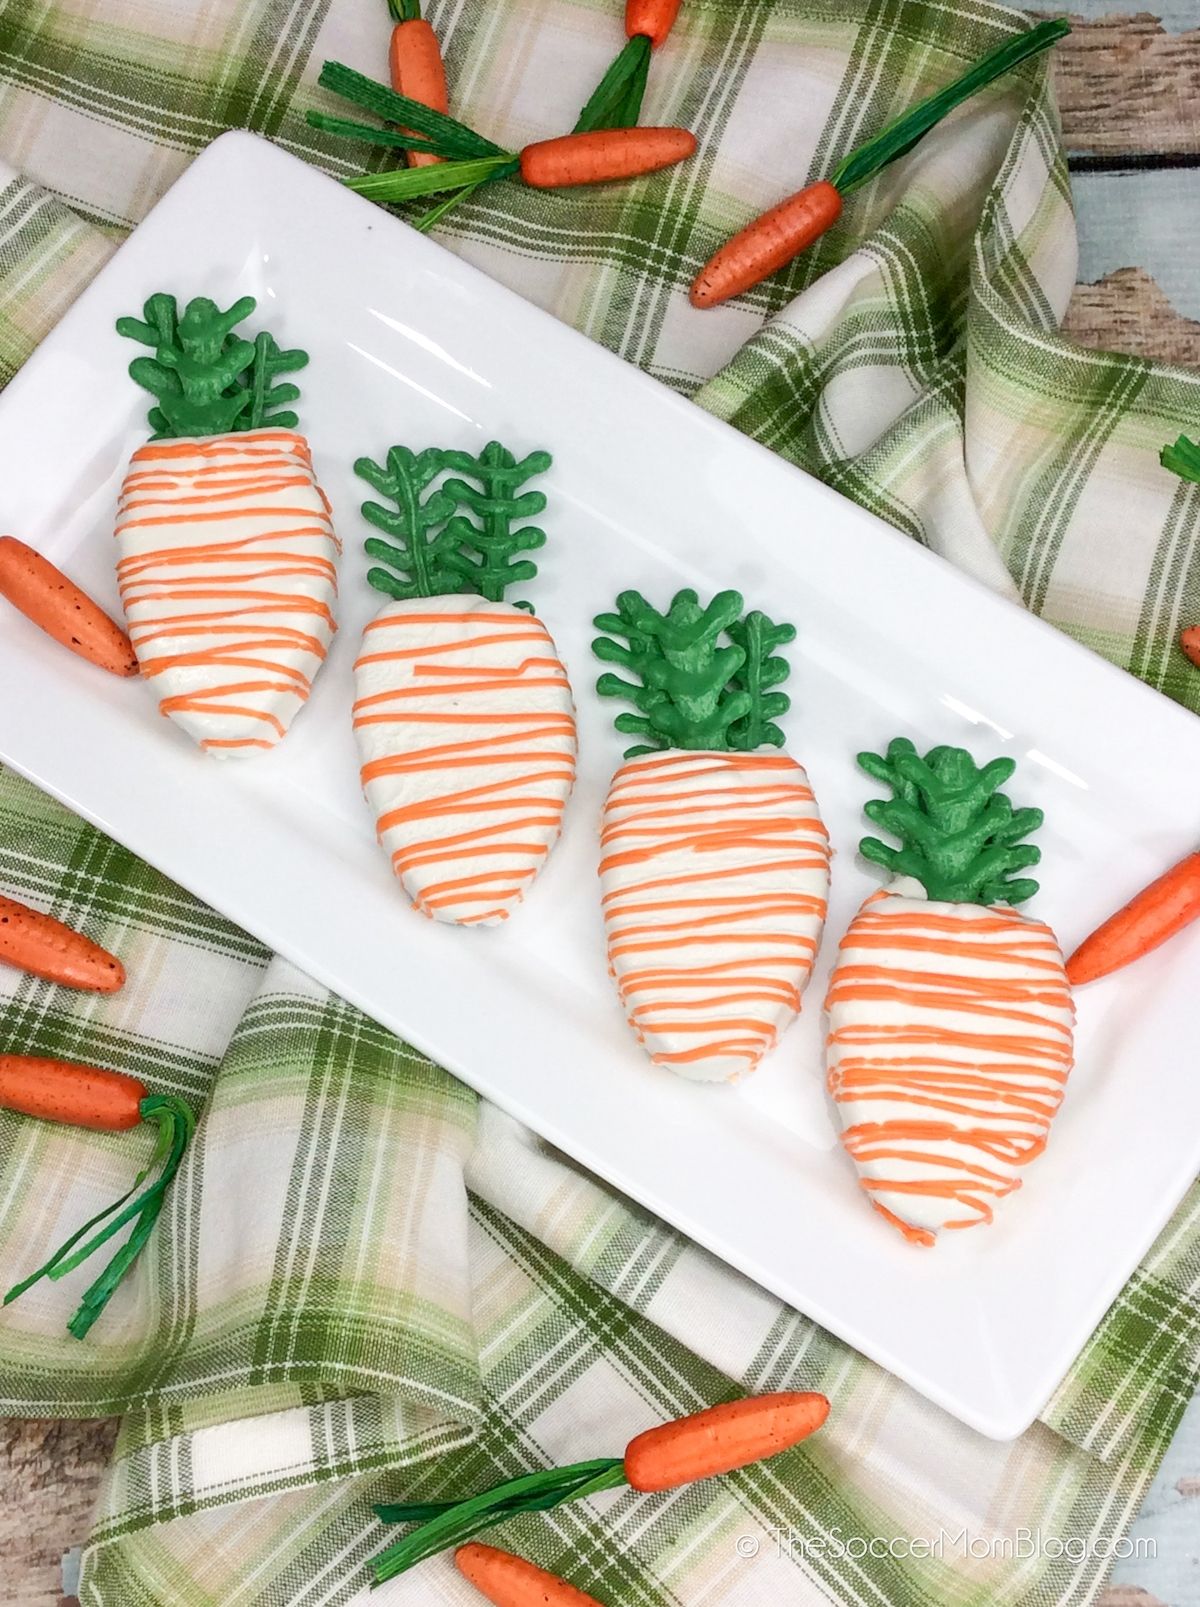 carrot-shaped cakes on plate